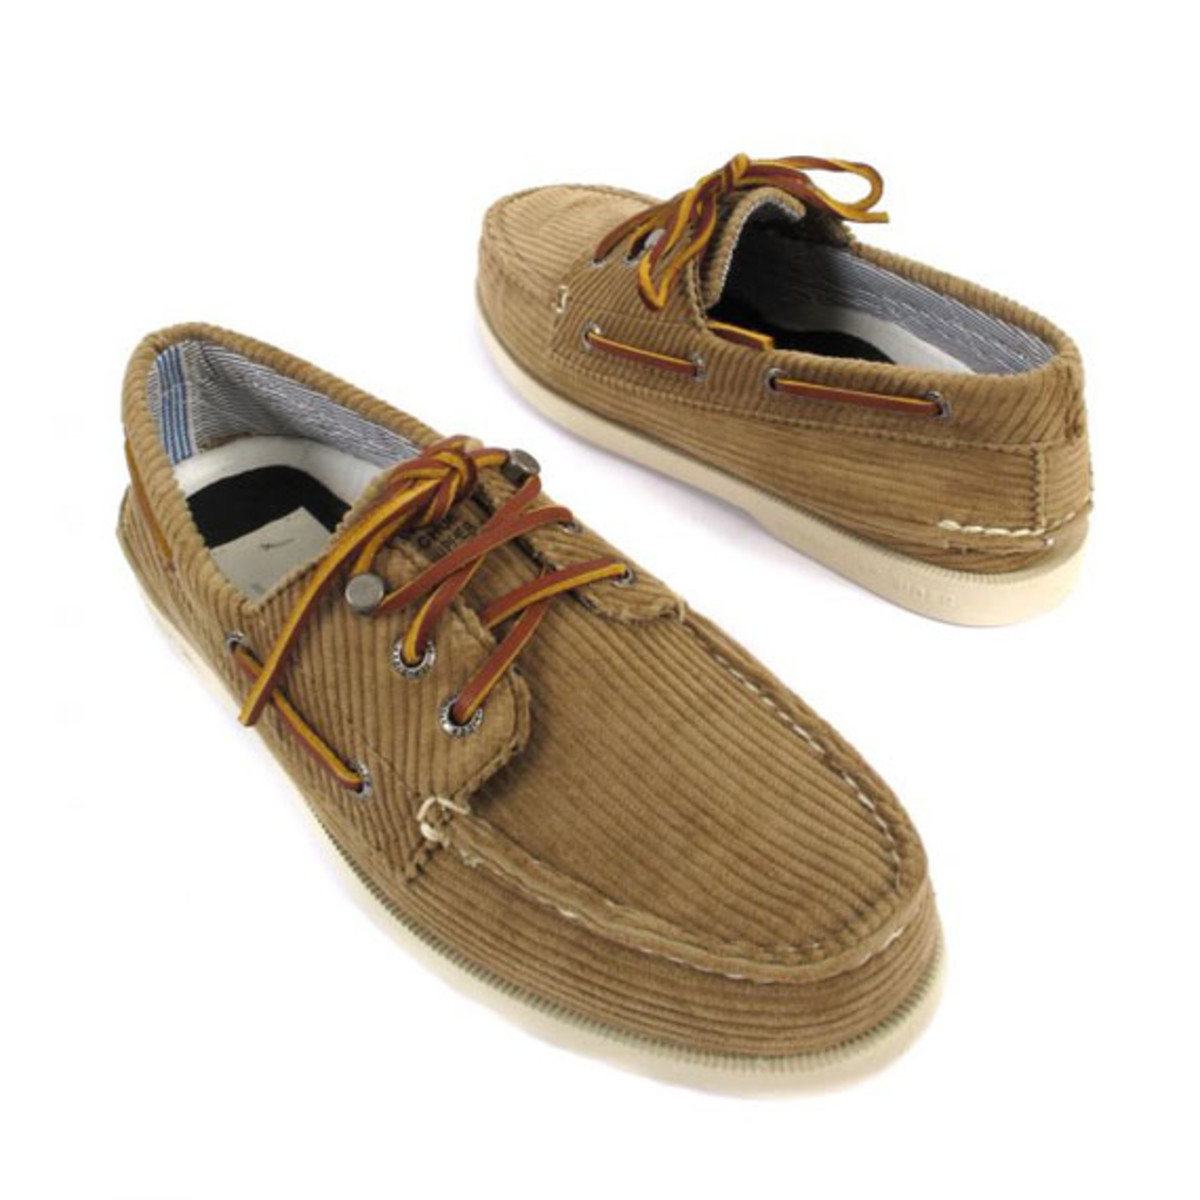 sperry-topsider-band-of-outsider-fw10-2